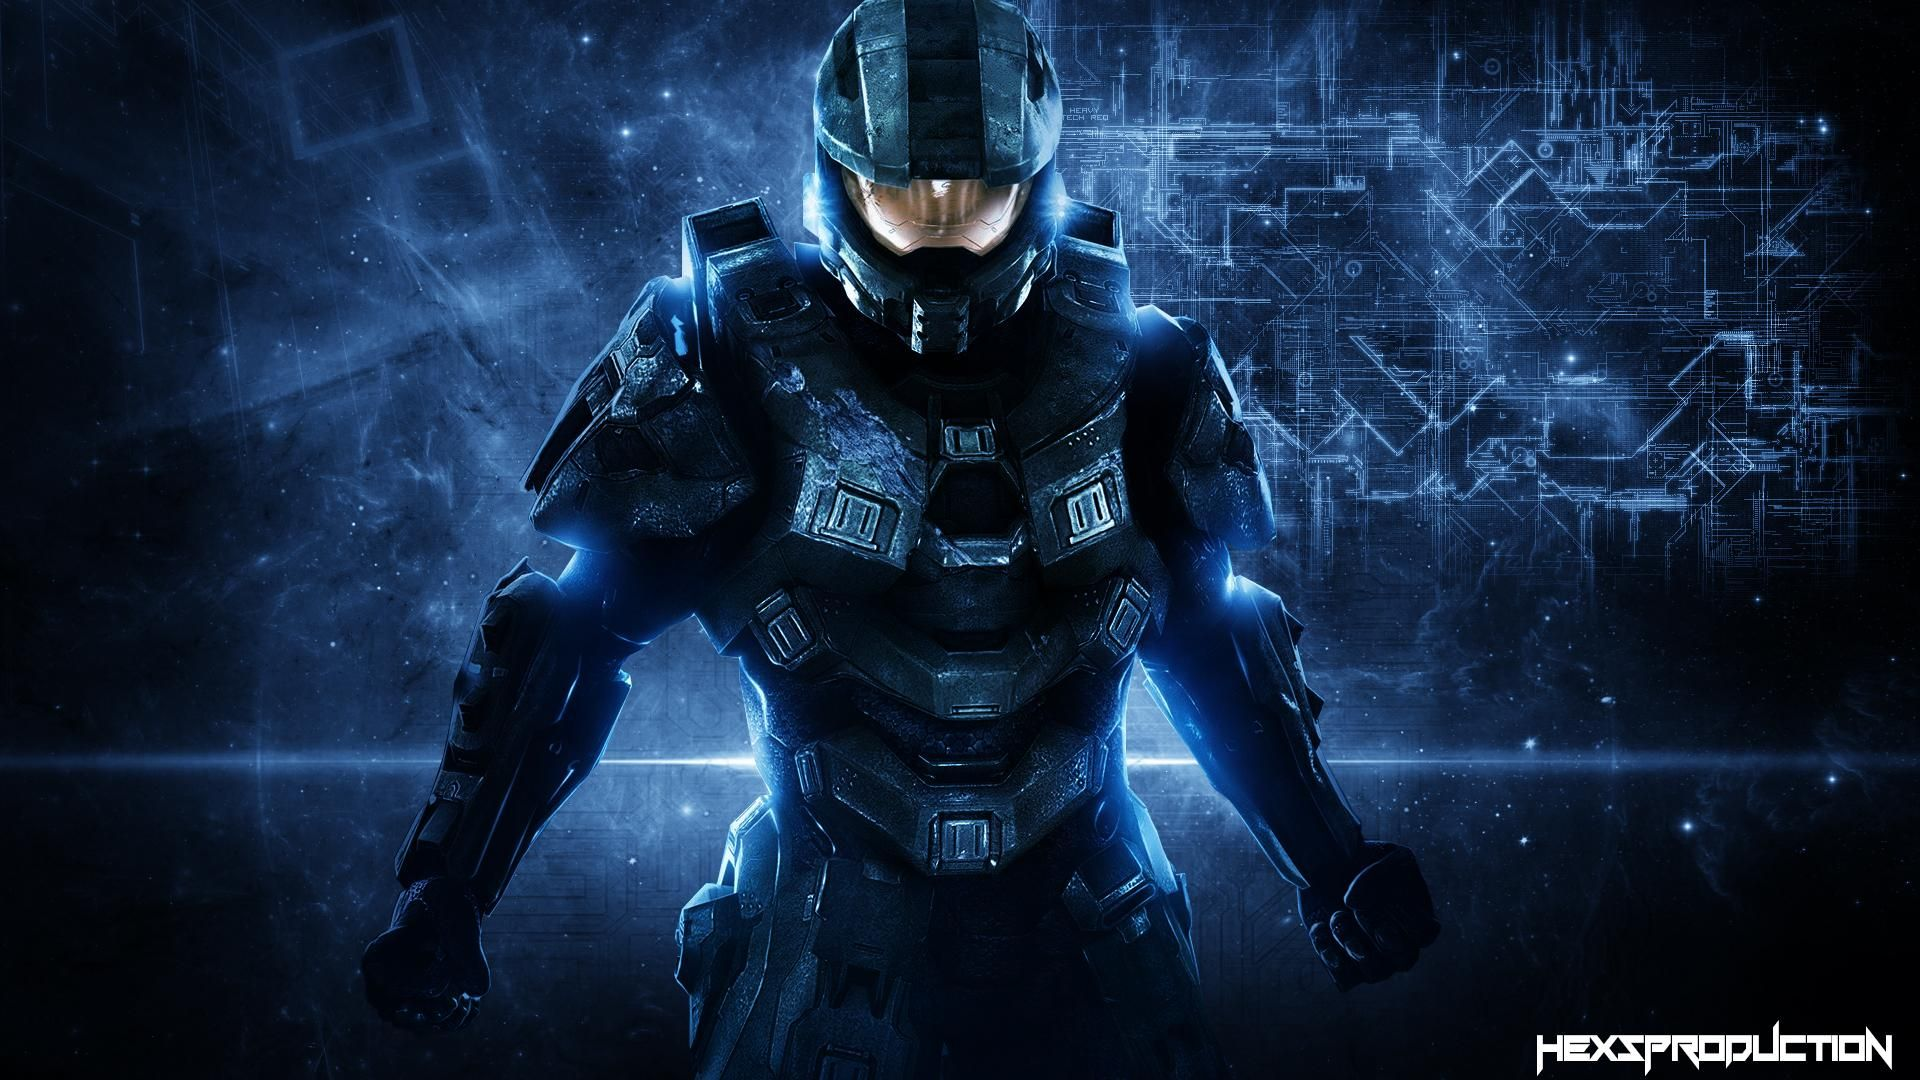 Halo free hd wallpapers download wallpapers 4k pinterest halo free hd wallpapers download voltagebd Images